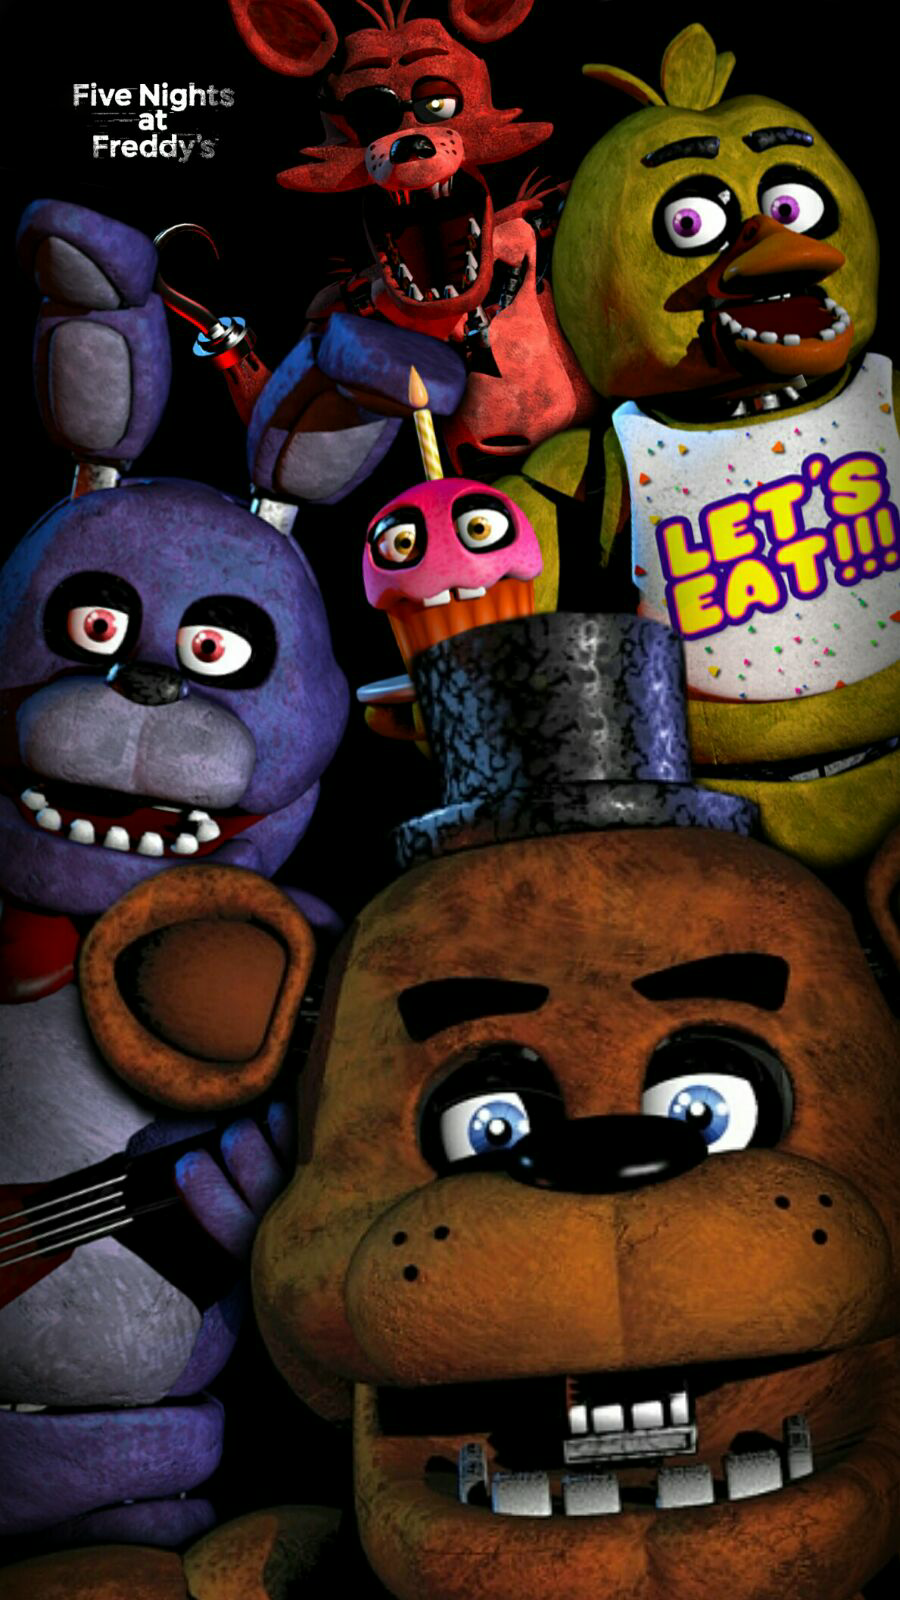 Five Nights At Freddys Wallpaper By Garebearart1 On Deviantart